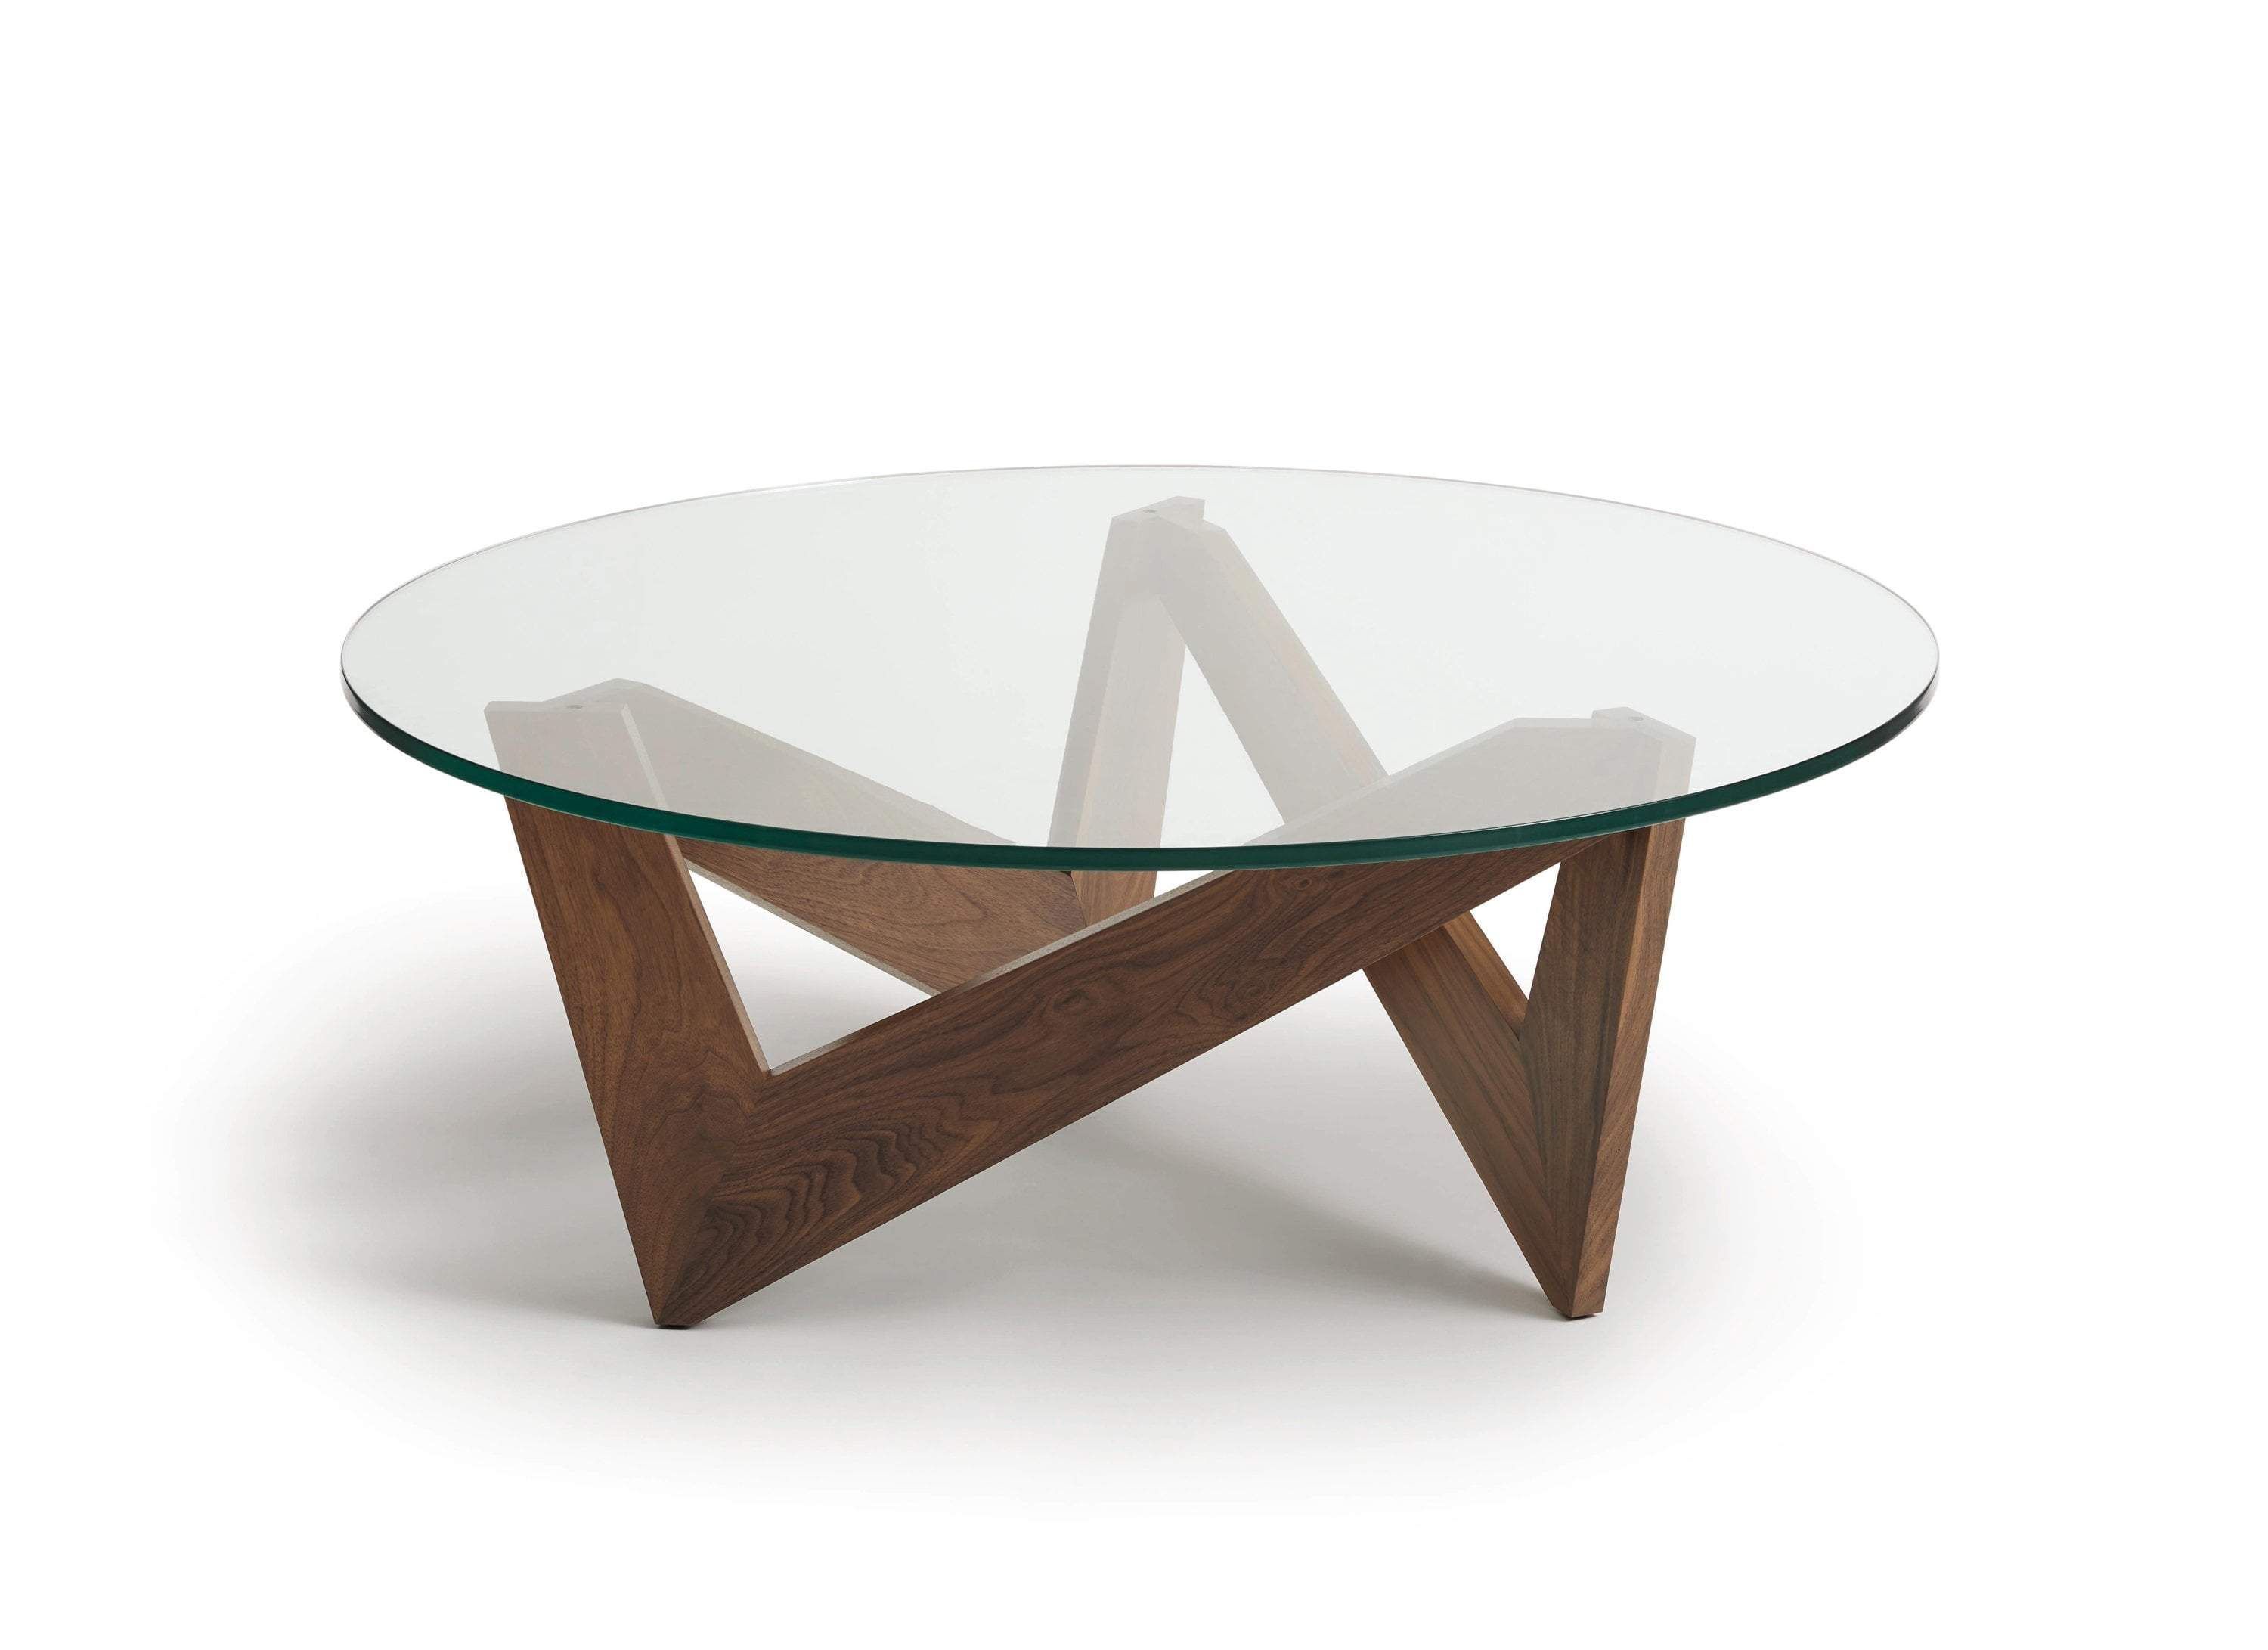 Check Round Coffee Table Round Coffee Table Coffee Table Modern Coffee Tables [ 2182 x 3000 Pixel ]